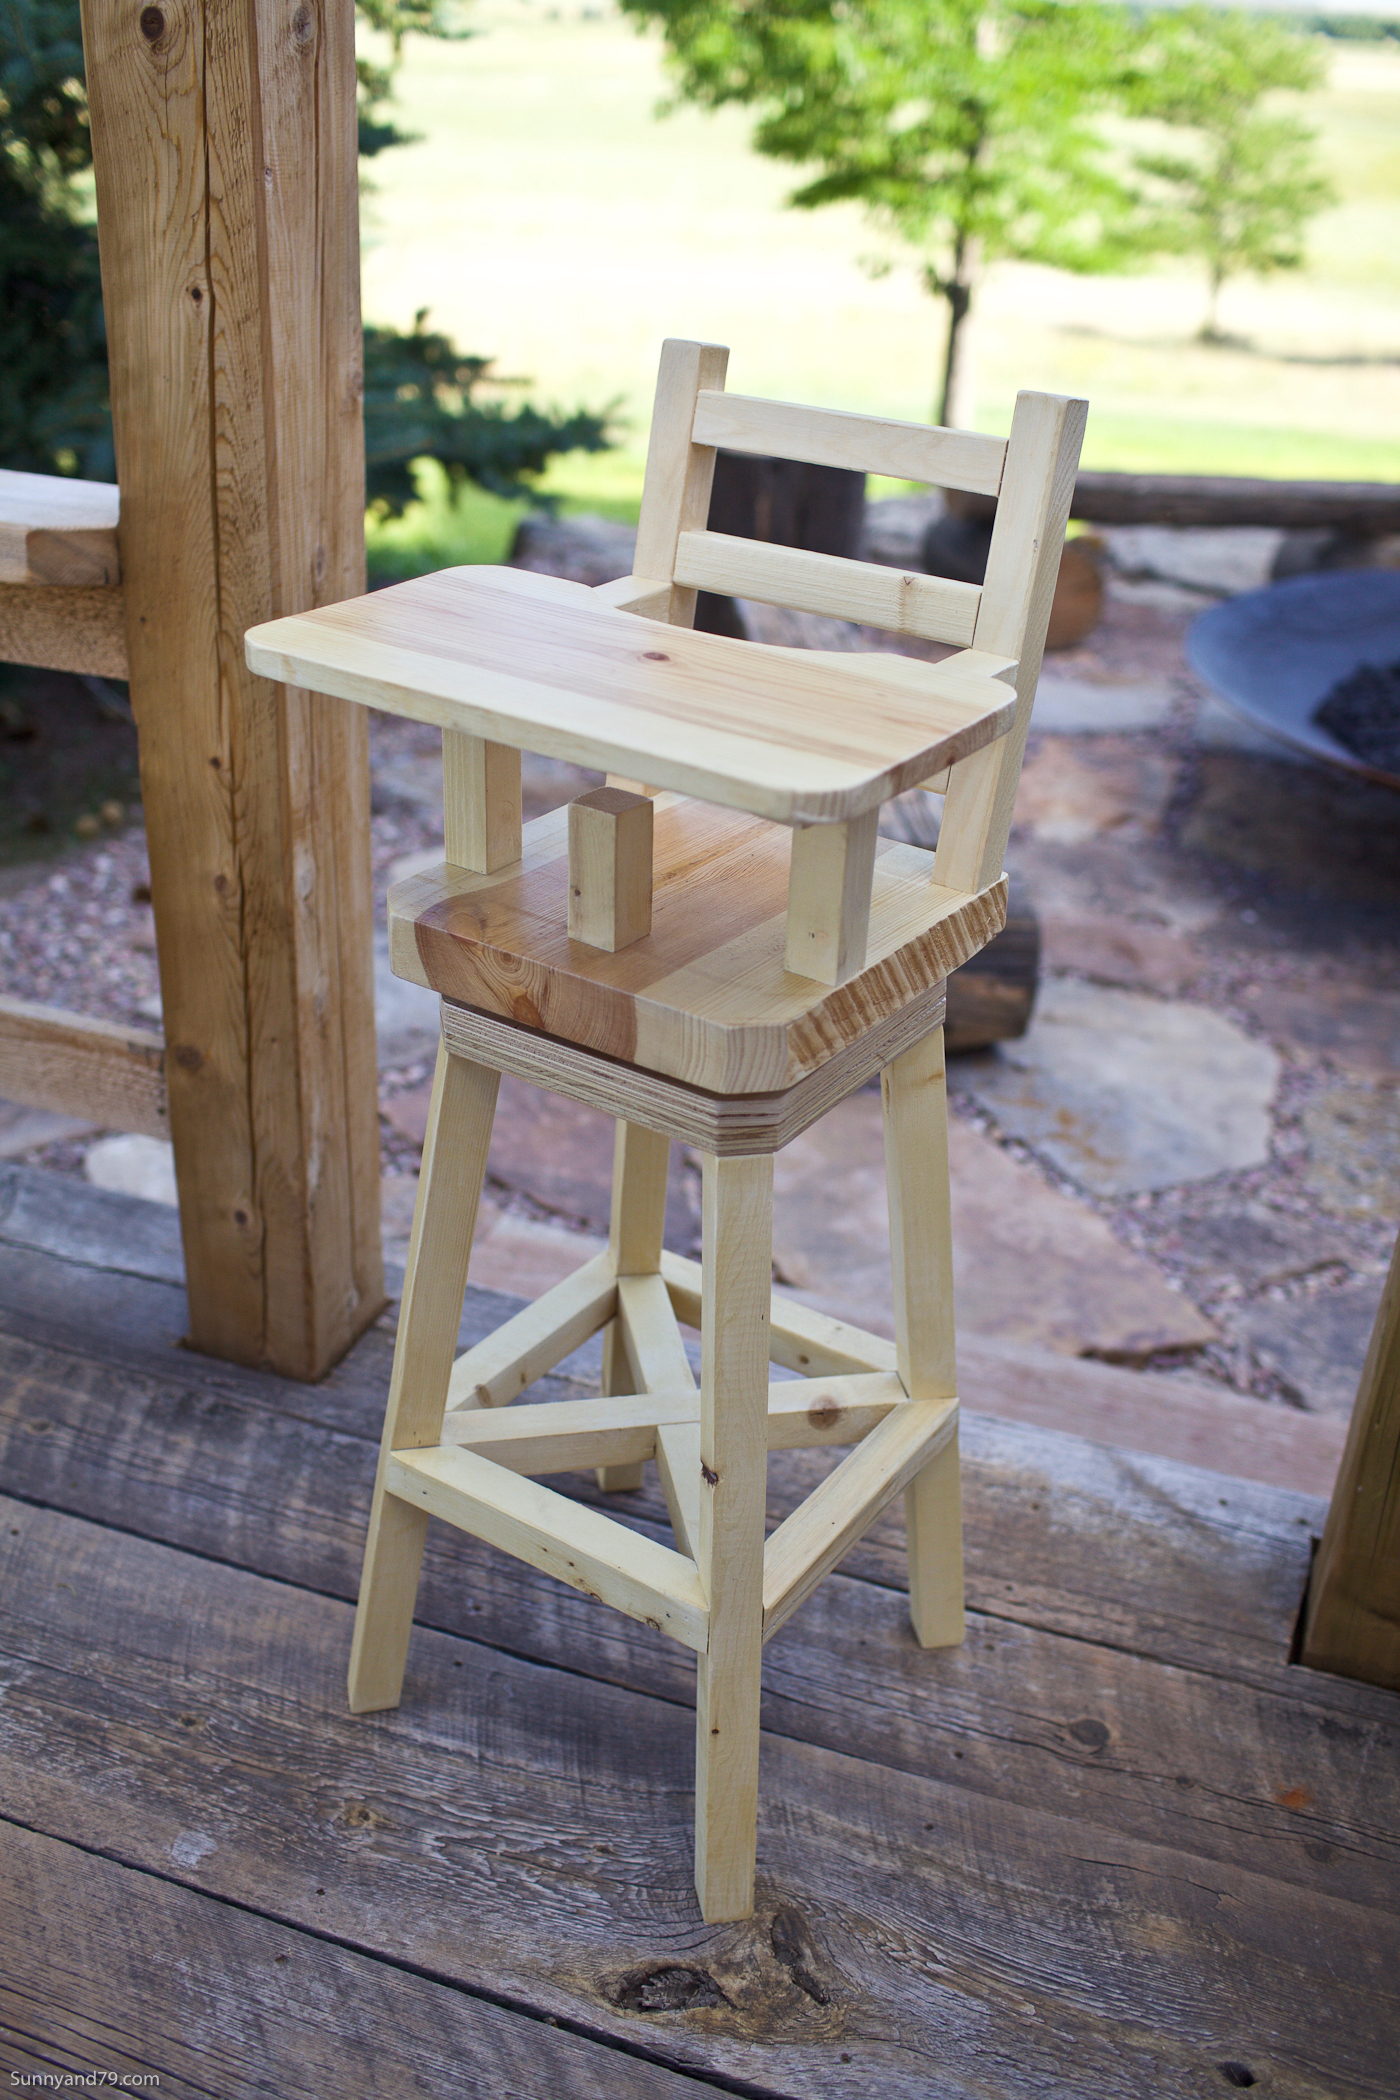 I Love How This Came Together! What Do You Think? Would You Actually Use A High  Chair Like This?